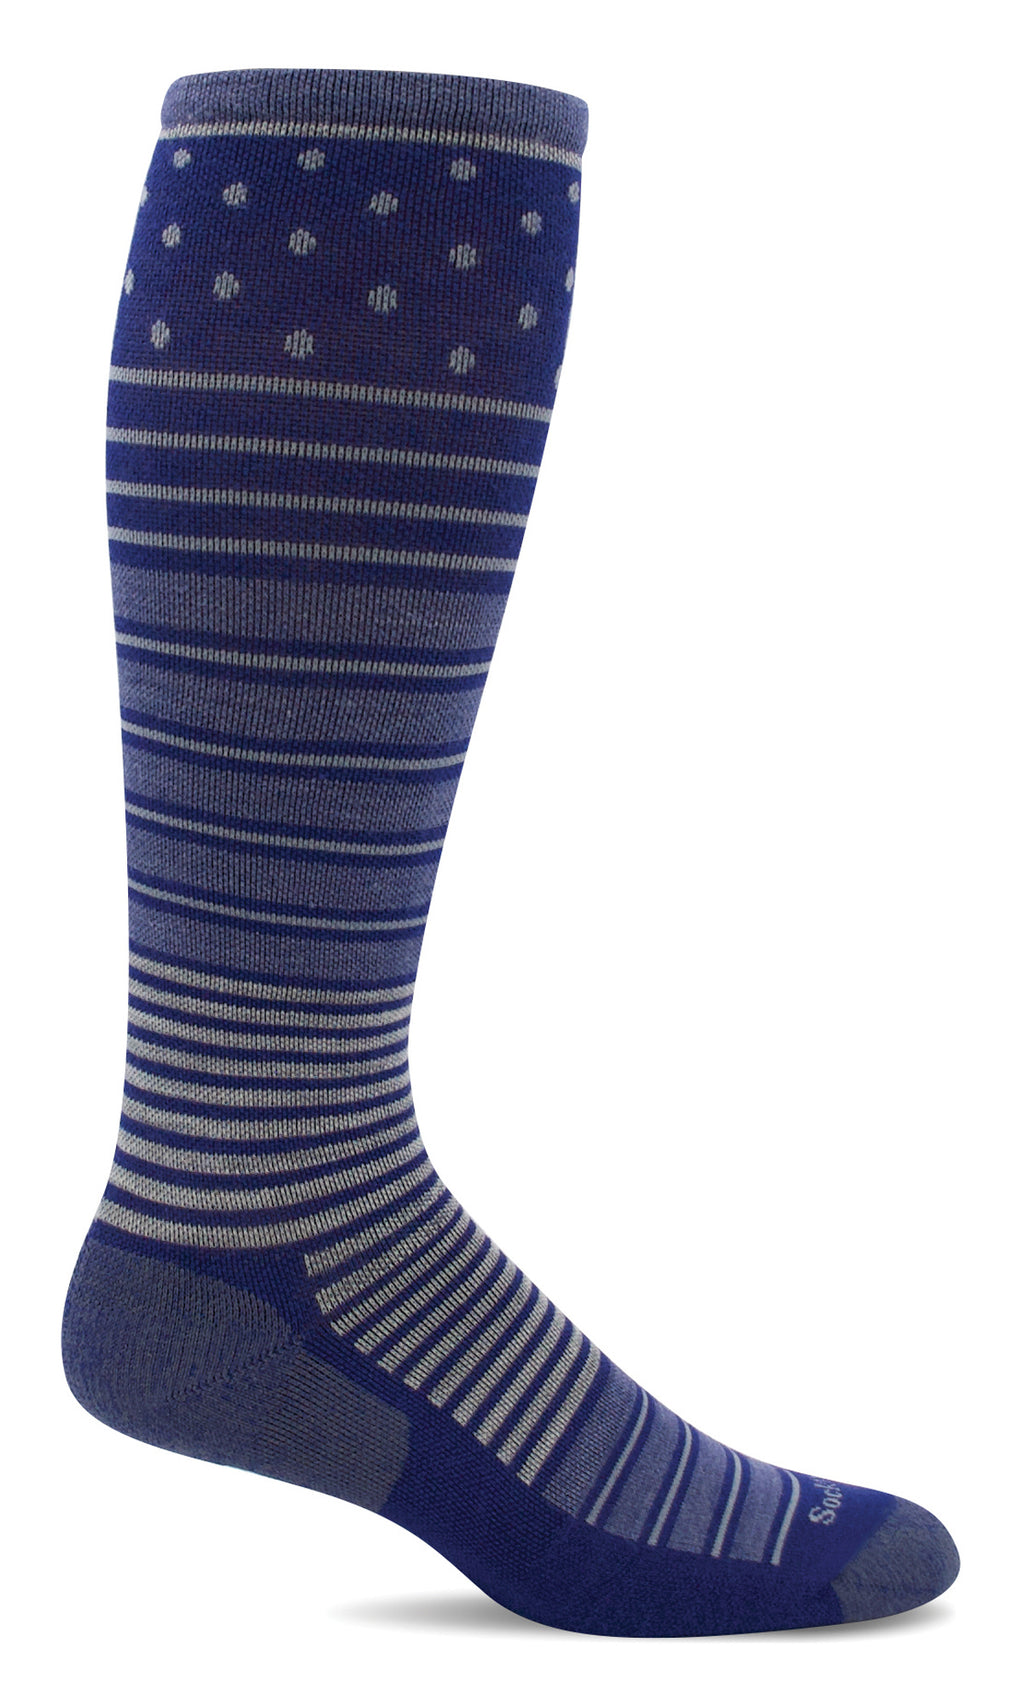 Women's Twister Firm Merino Wool Compression Socks in Hyacinth